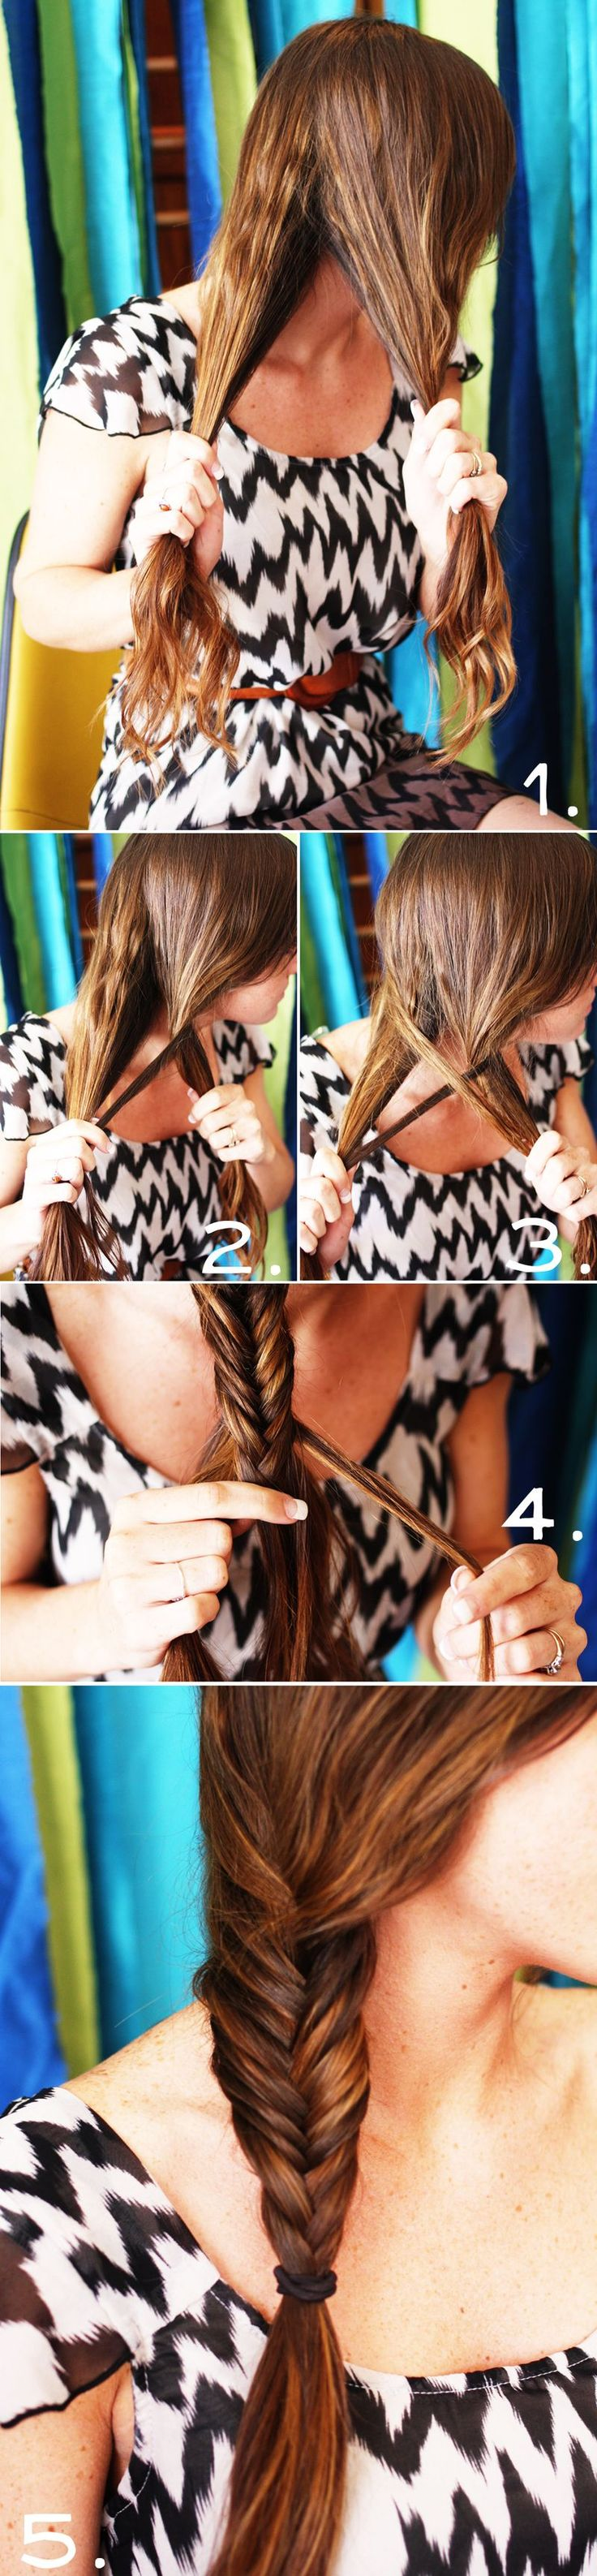 Fishtail braid! I just figured out how to do this (20 minutes later) and I love it! Not as hard at all once you get the hang of it.    Tip: Part hair in two and when you separate your hair to bring to the other side, pull from the backside of your hair. This creates the fishtail effect.